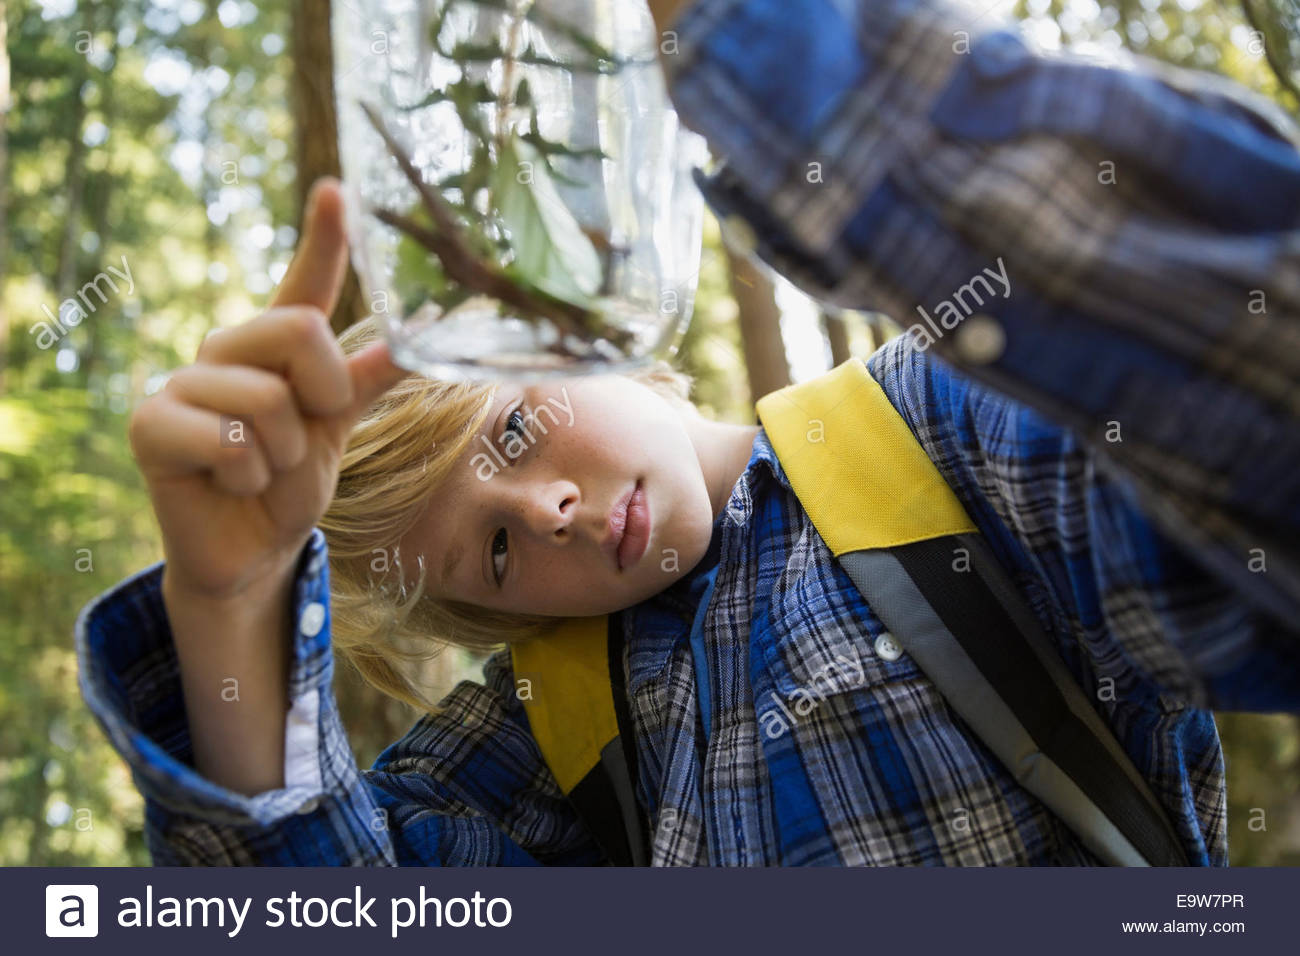 Curious boy in woods examining plants in jar - Stock Image